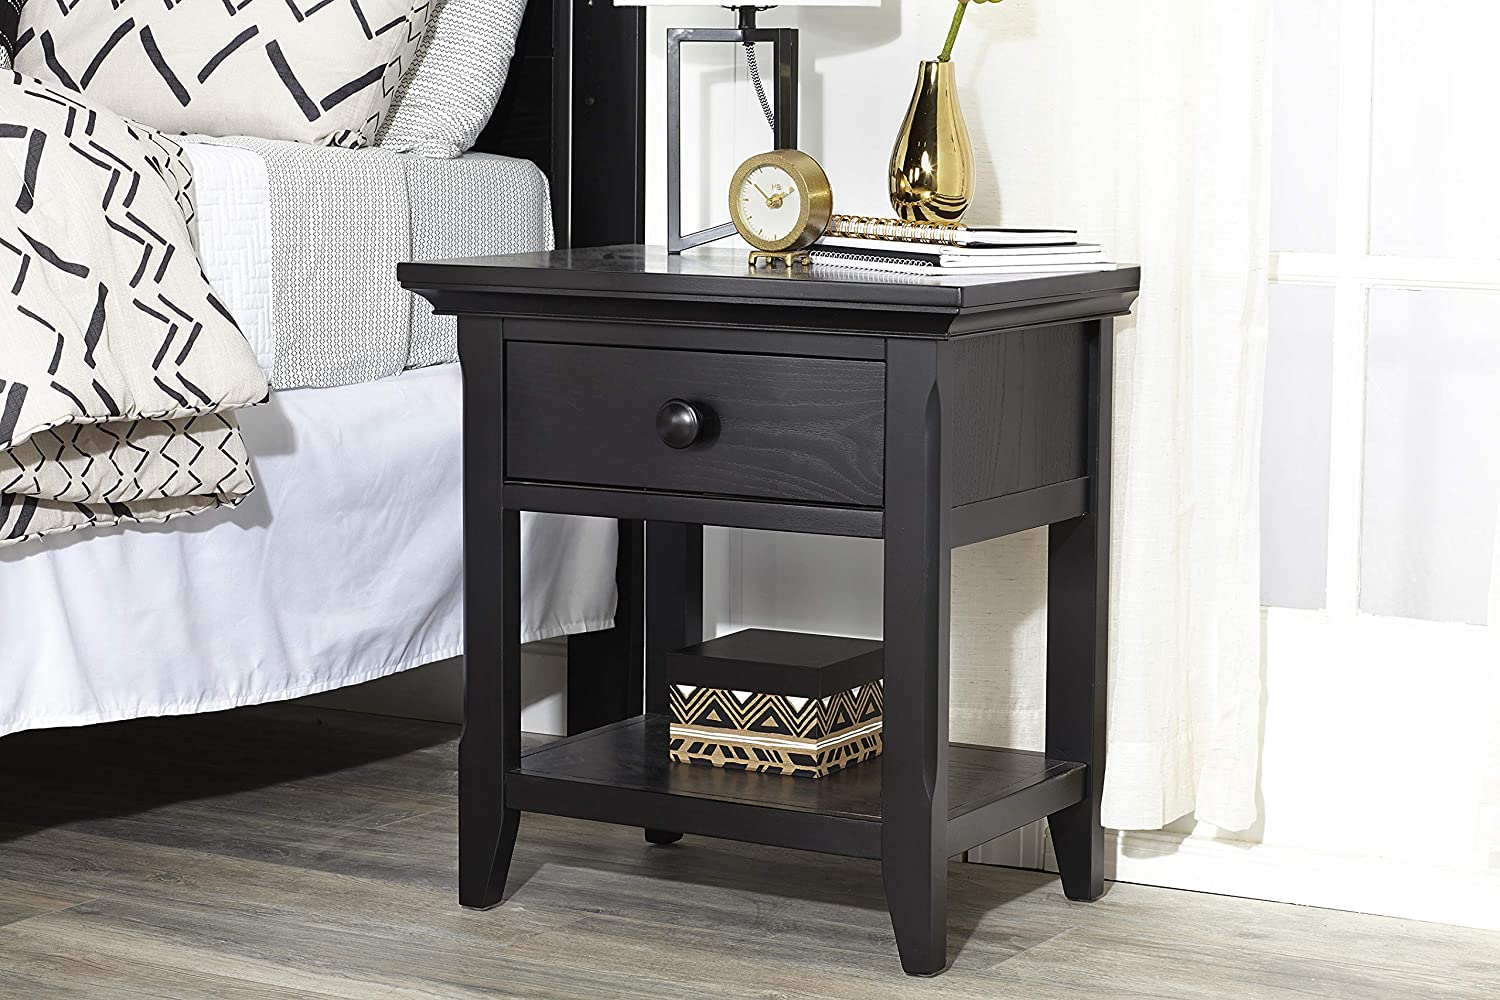 Baby Cache Overland 1 Drawer Nightstand Forever Black